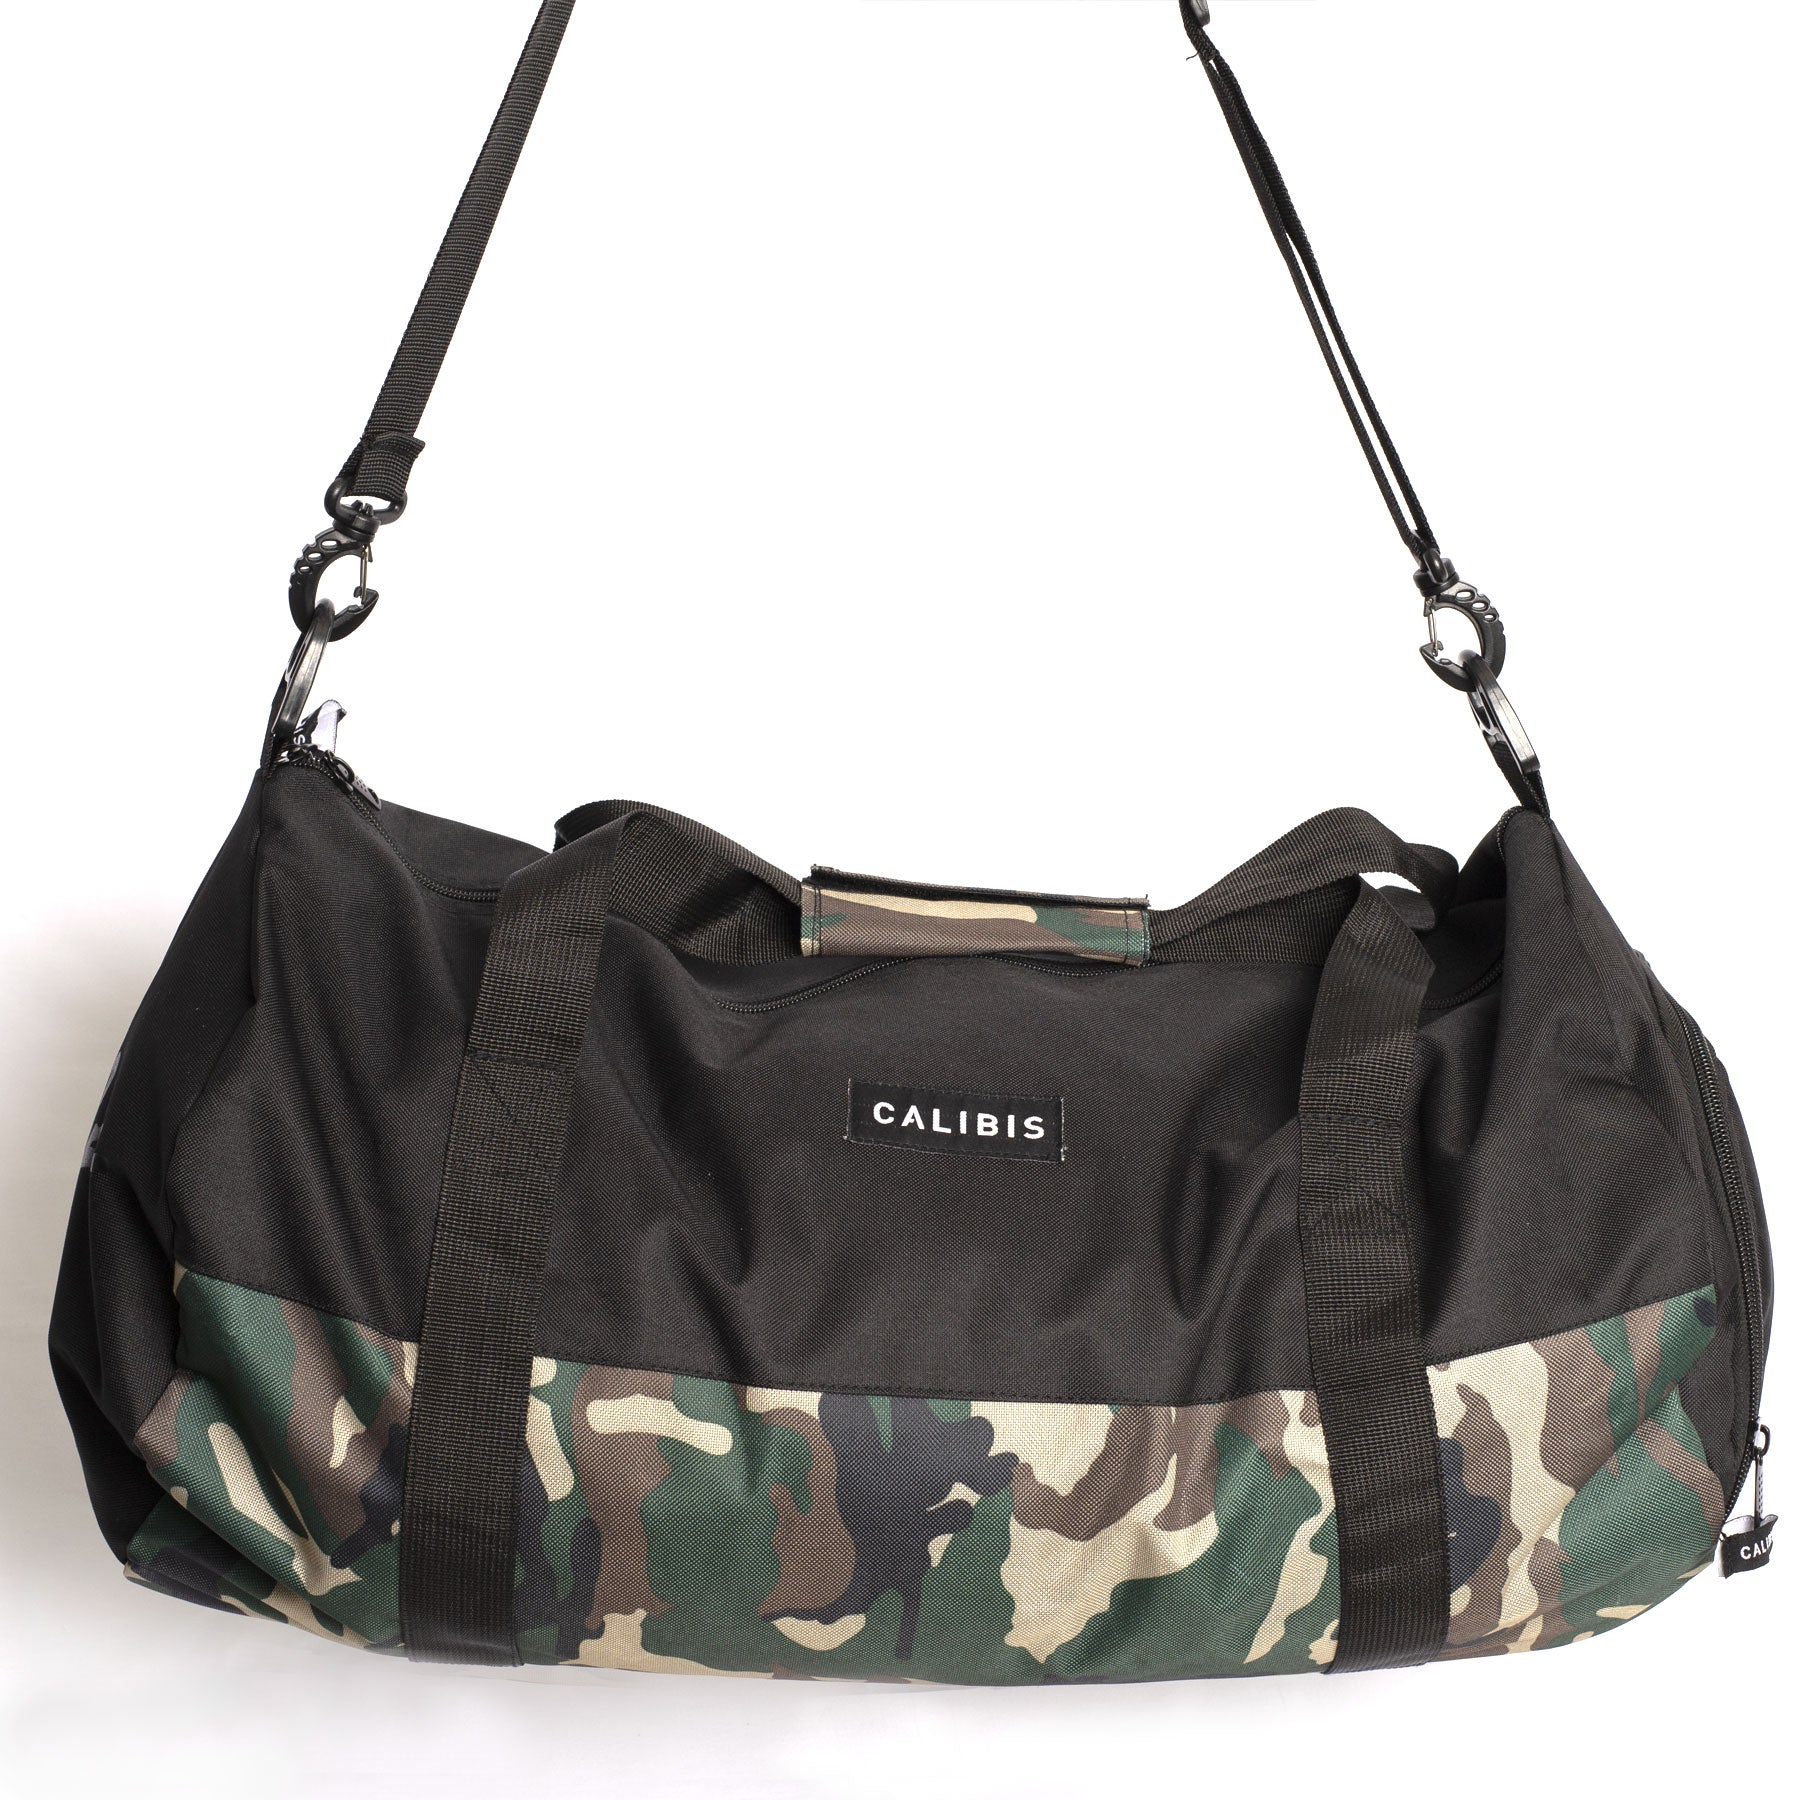 Calibis Duffel Bag by Calibis Clothing